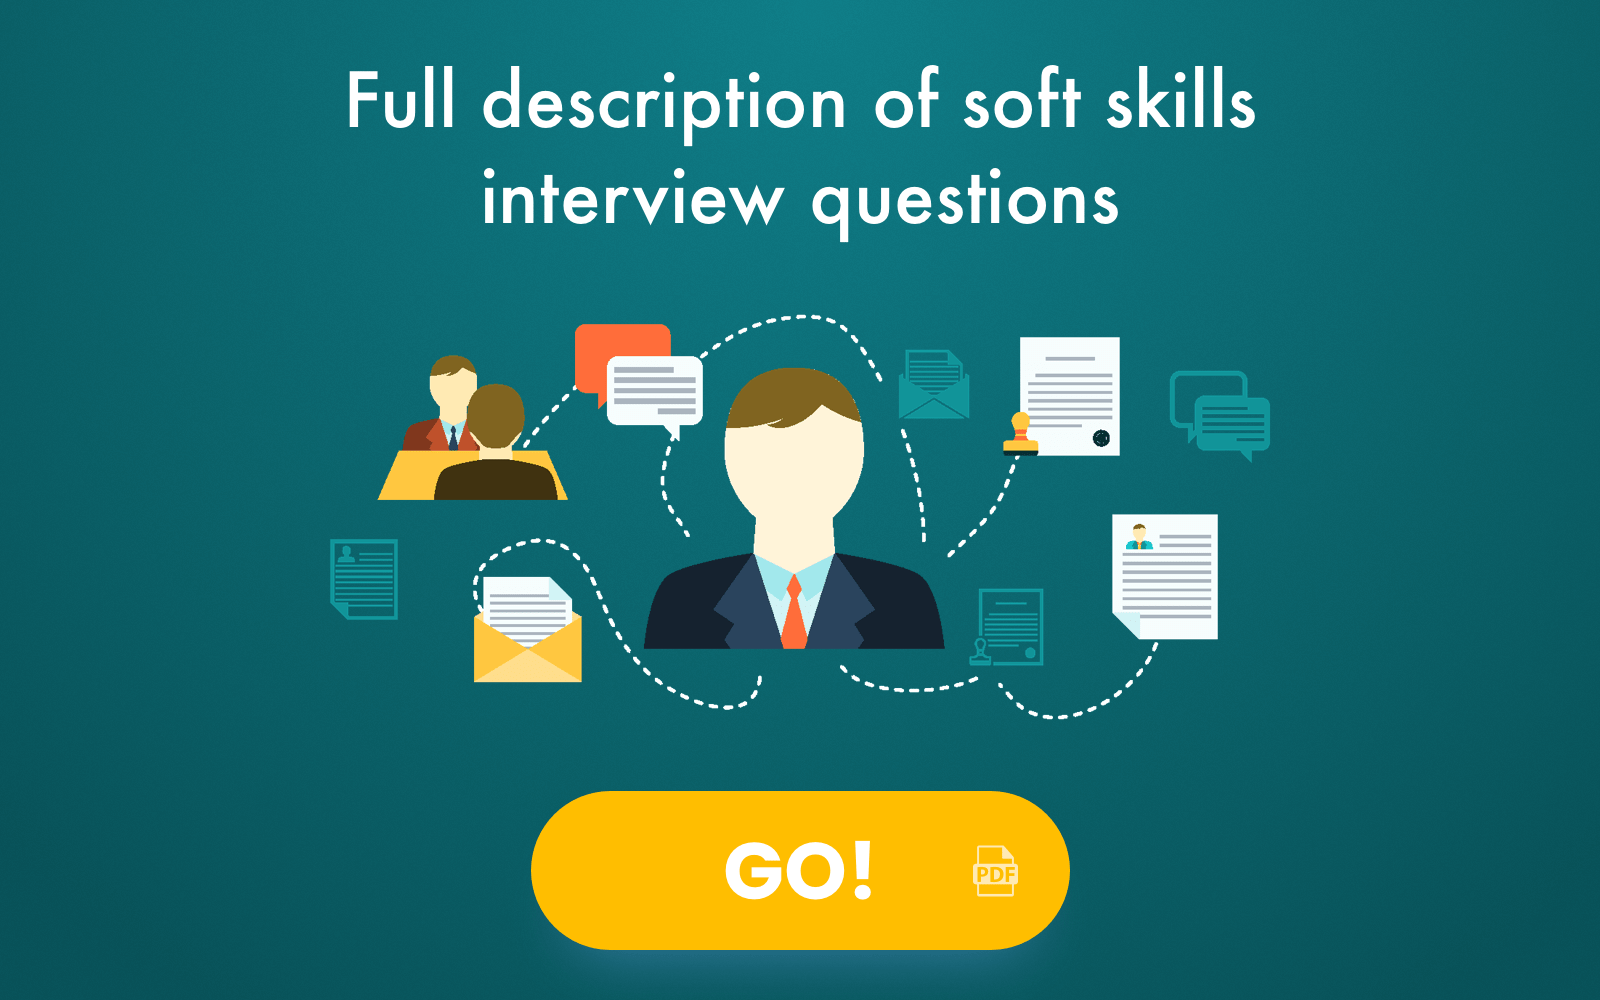 Front-end developer interview questions to test soft skills